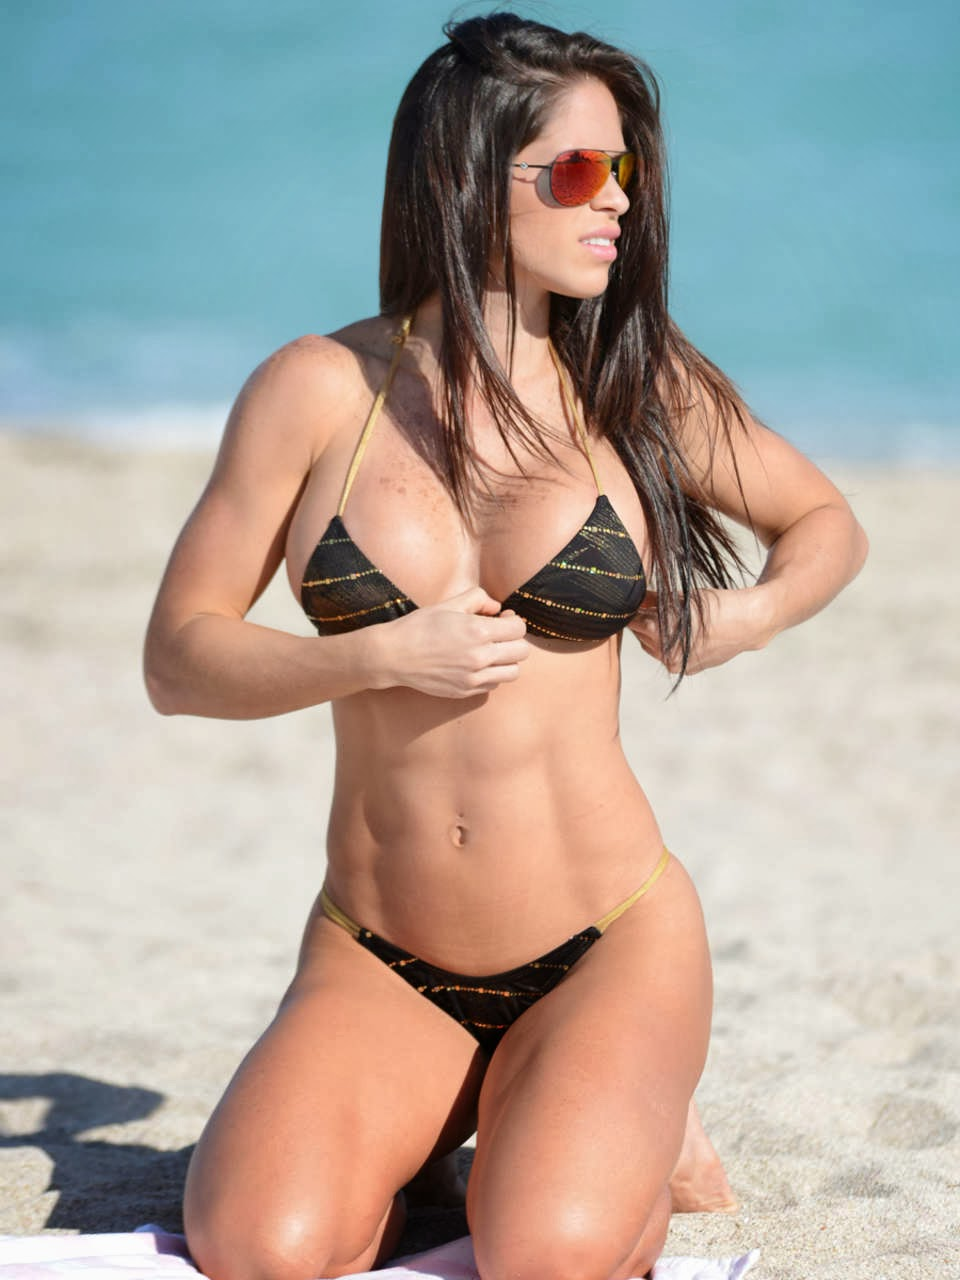 English:Michelle Lewin Black Bikini Miami February‭ ‬14,‭ ‬2014‭